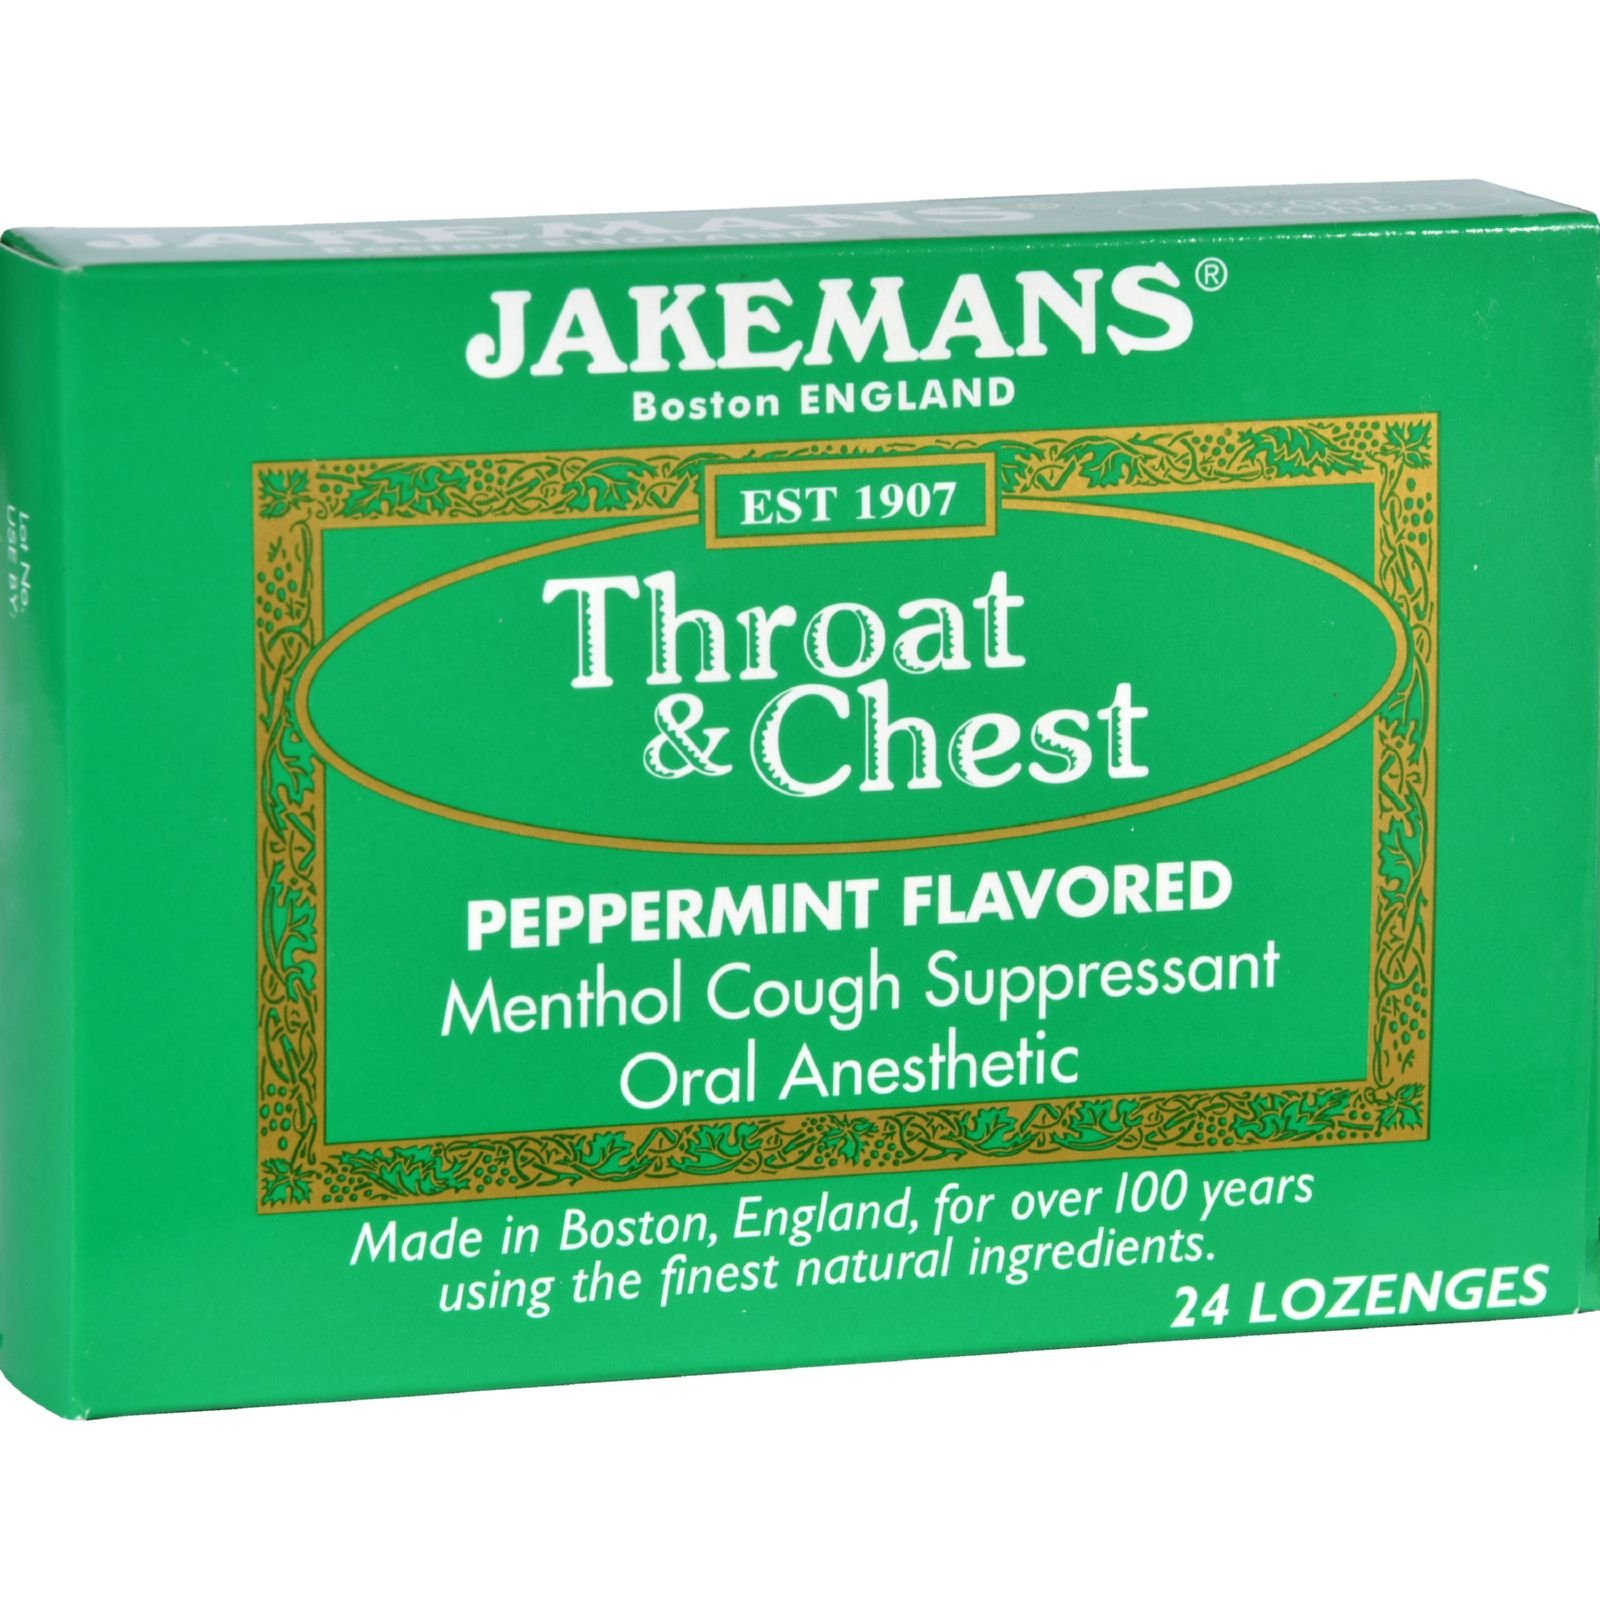 2Pack! Jakemans Lozenge - Throat and Chest - Peppermint - 24 Count - 1 Case